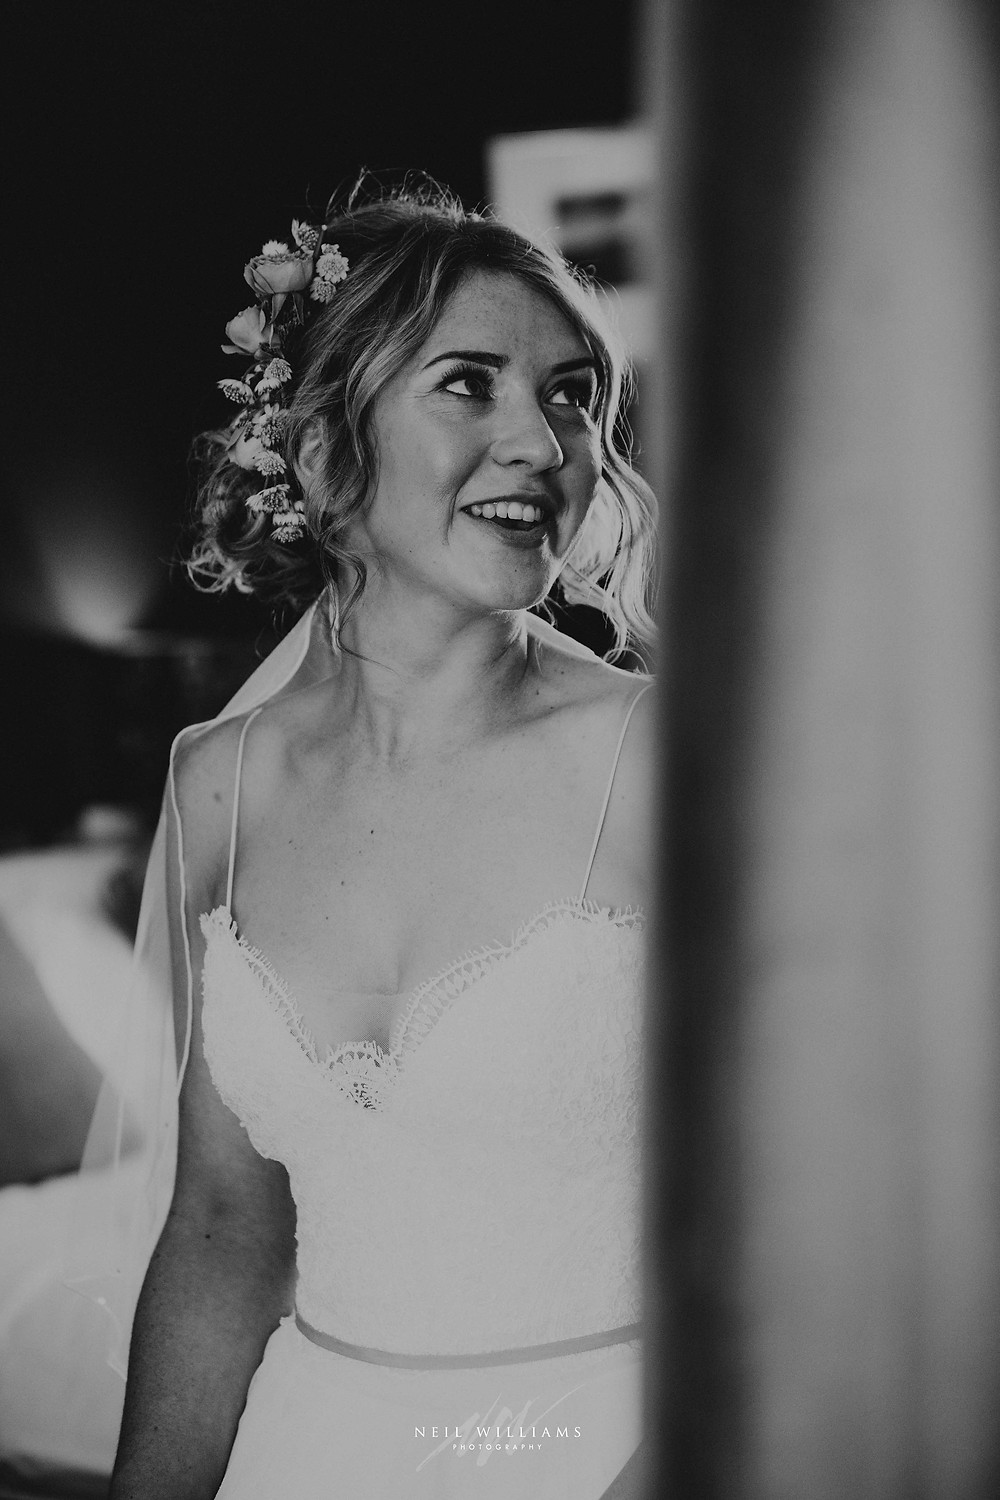 pembrokeshire, wedding, photography, neil, williams, south wales photographer, cardiff, swansea, carmarthen, bristol, cotswolds, llys meddyg, rustic, alternative, boho, bridal portrait